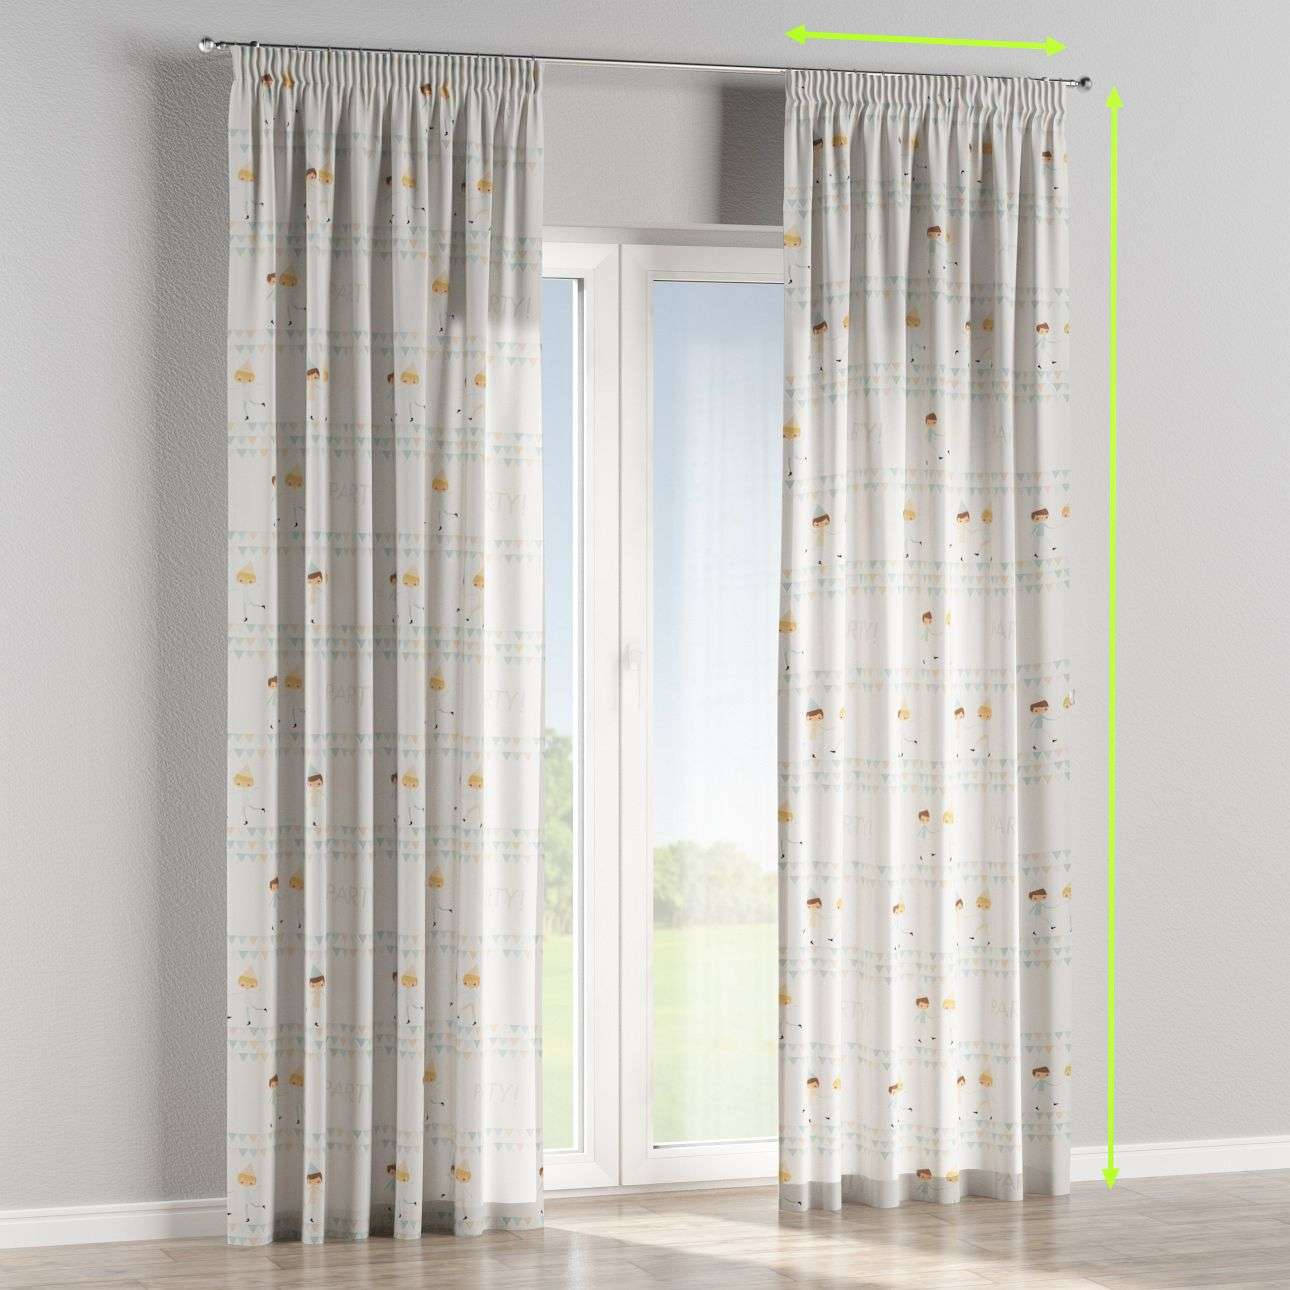 Pencil pleat curtains in collection Apanona, fabric: 151-01